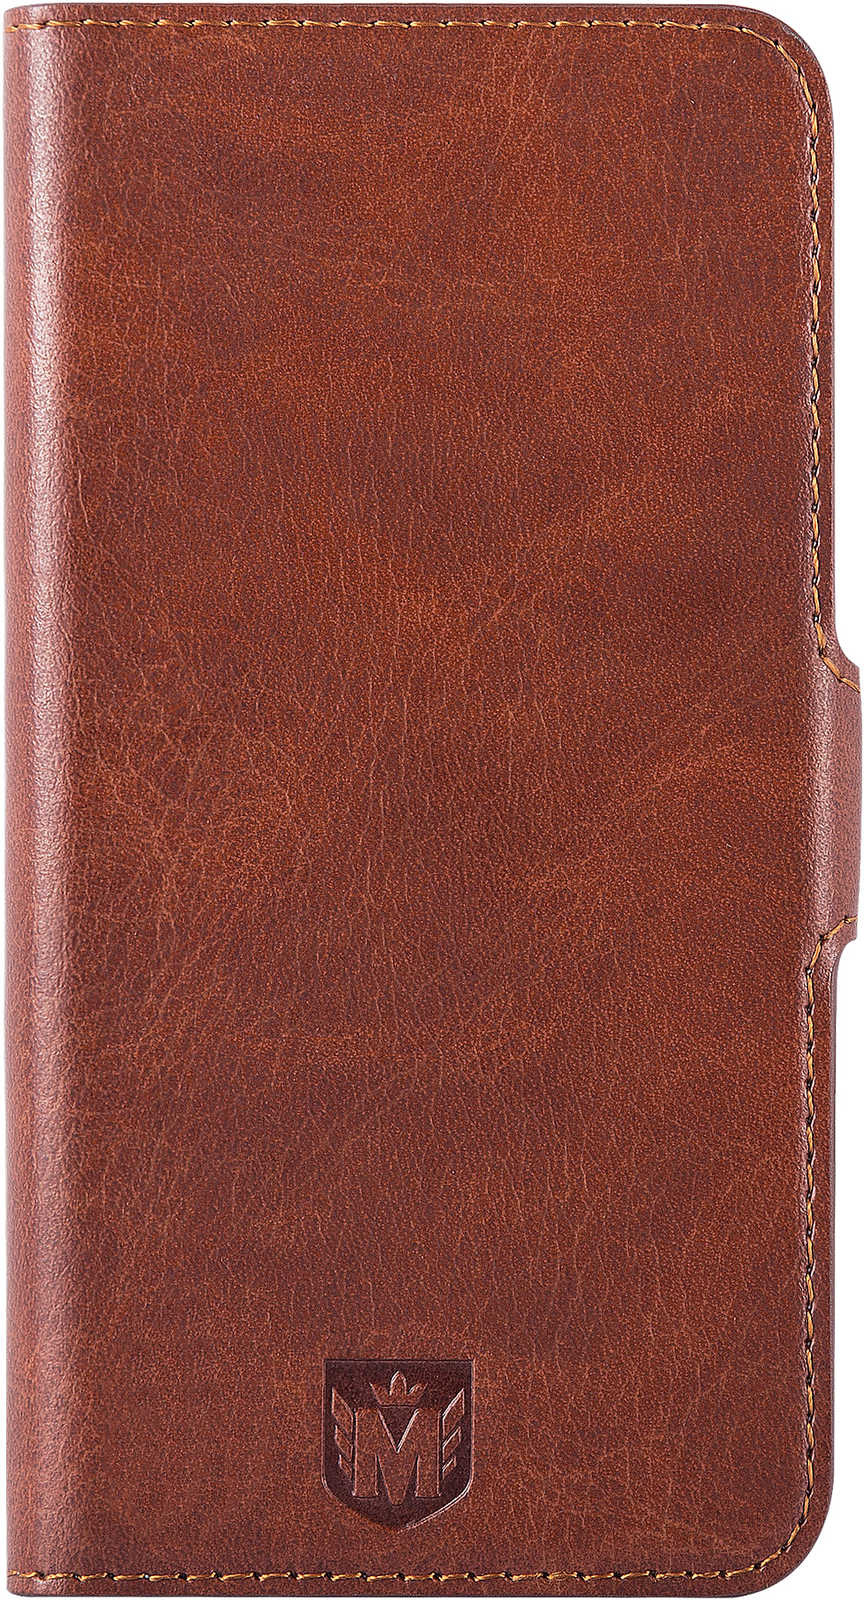 Merskal Magneto Slim (iPhone 6/6S) – Brun